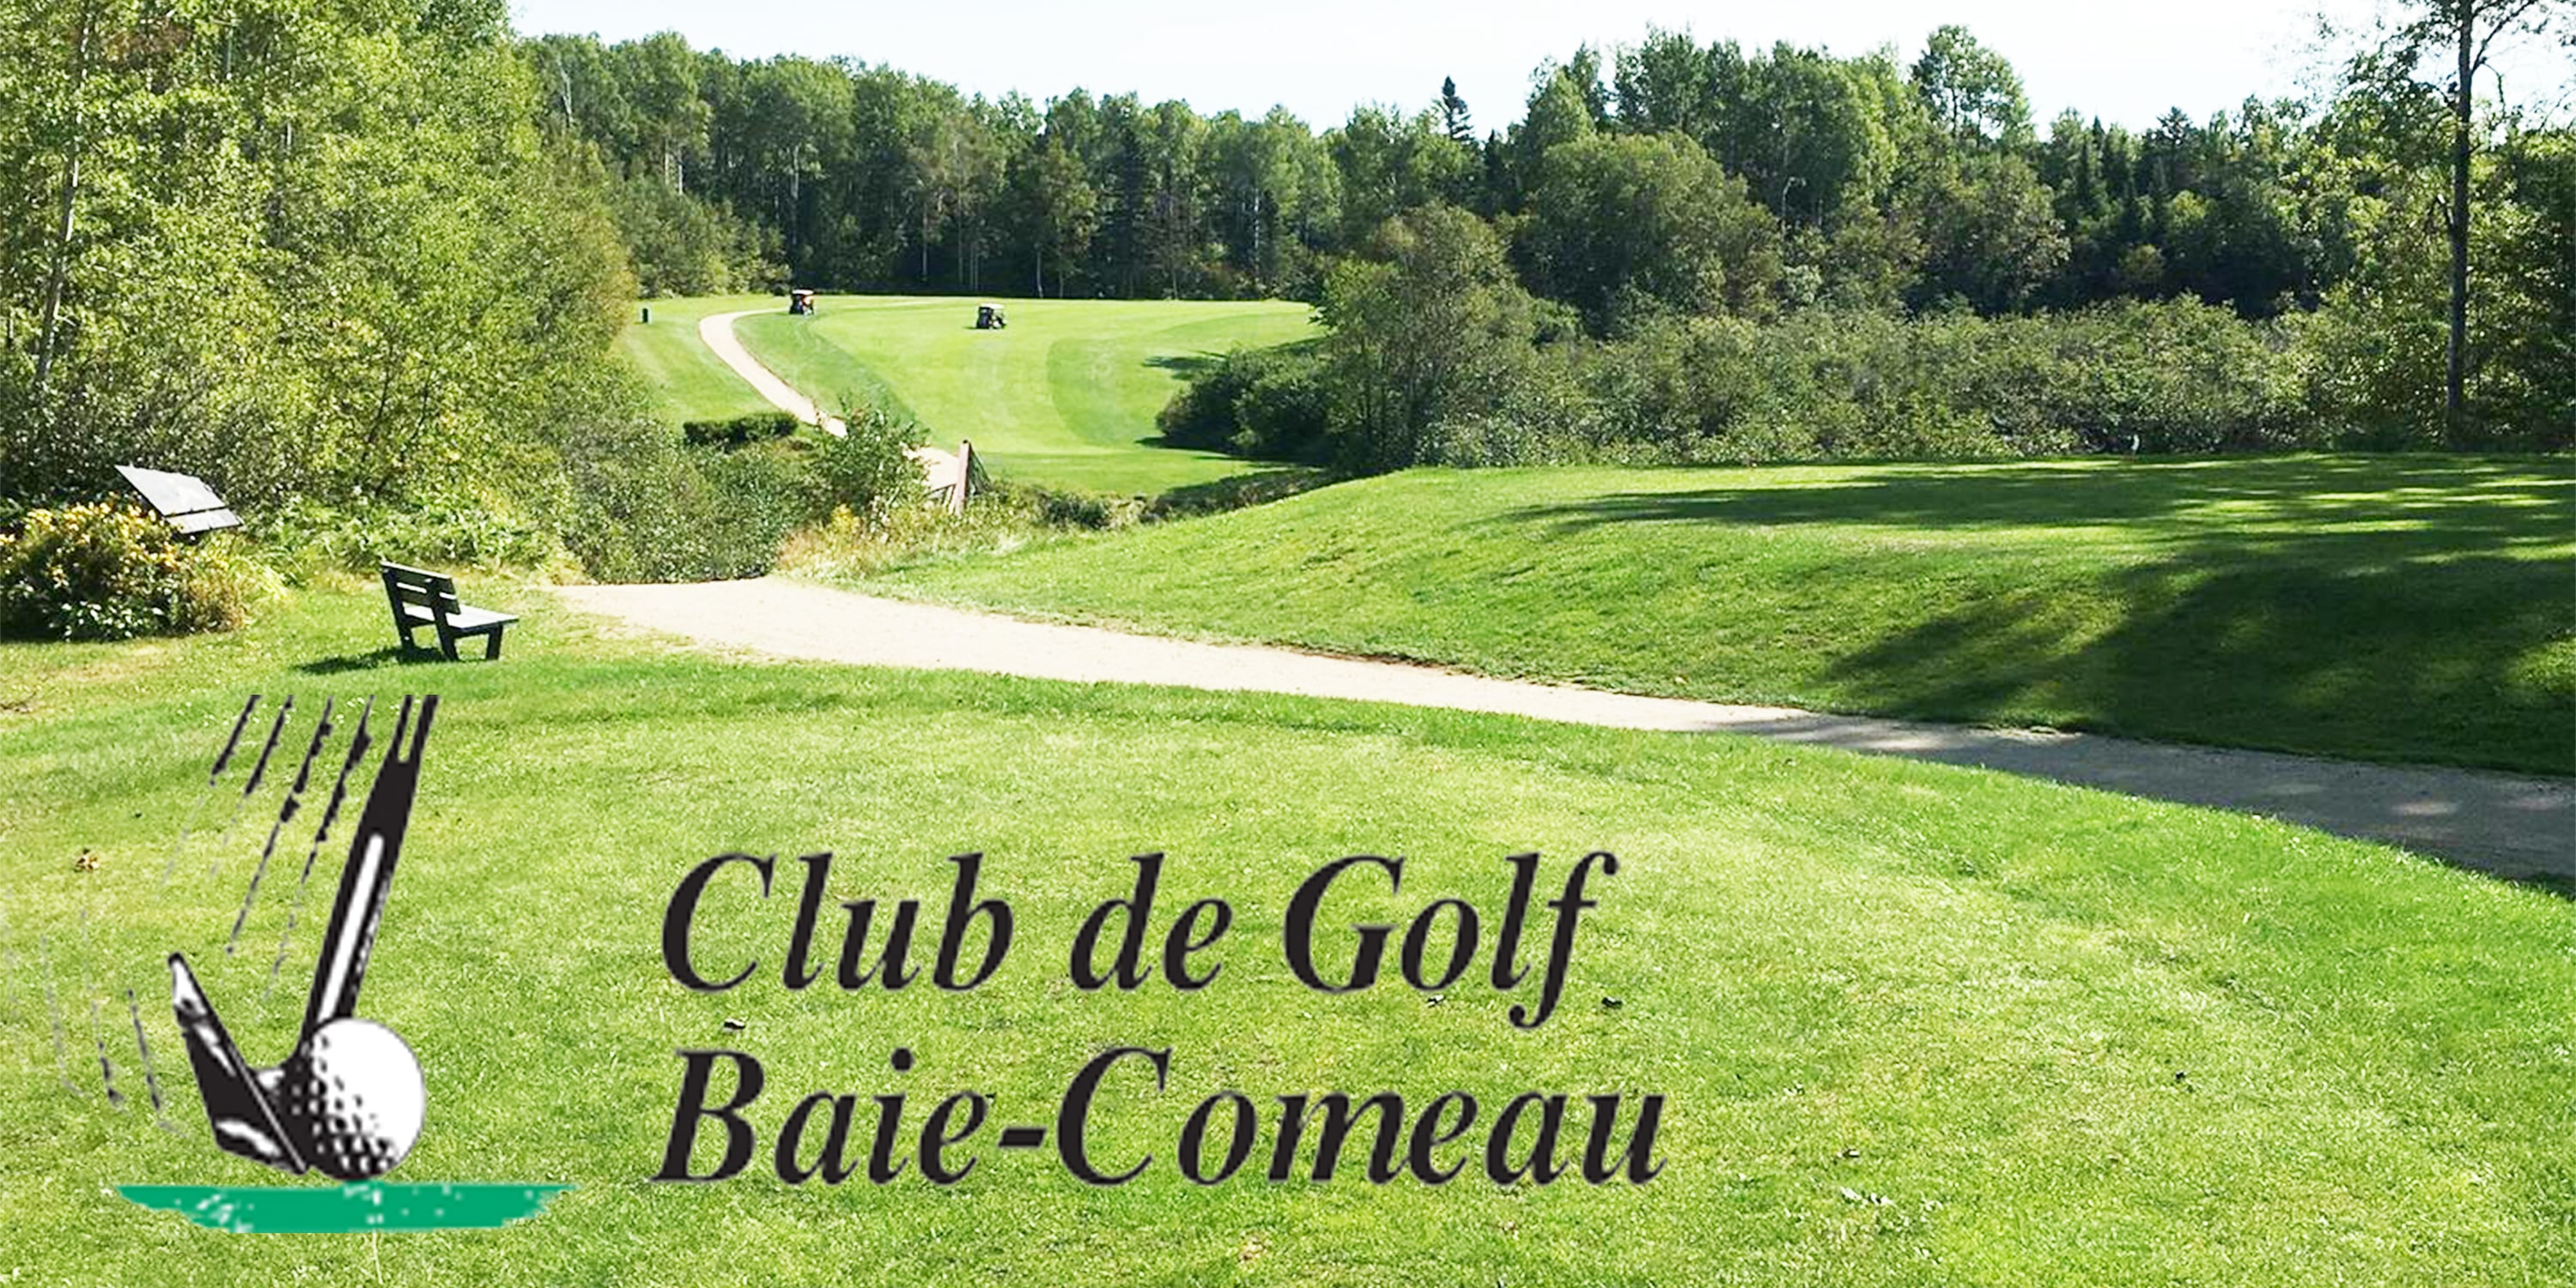 Club de Golf Baie-Comeau - A Challenge For All Golfers | golf software